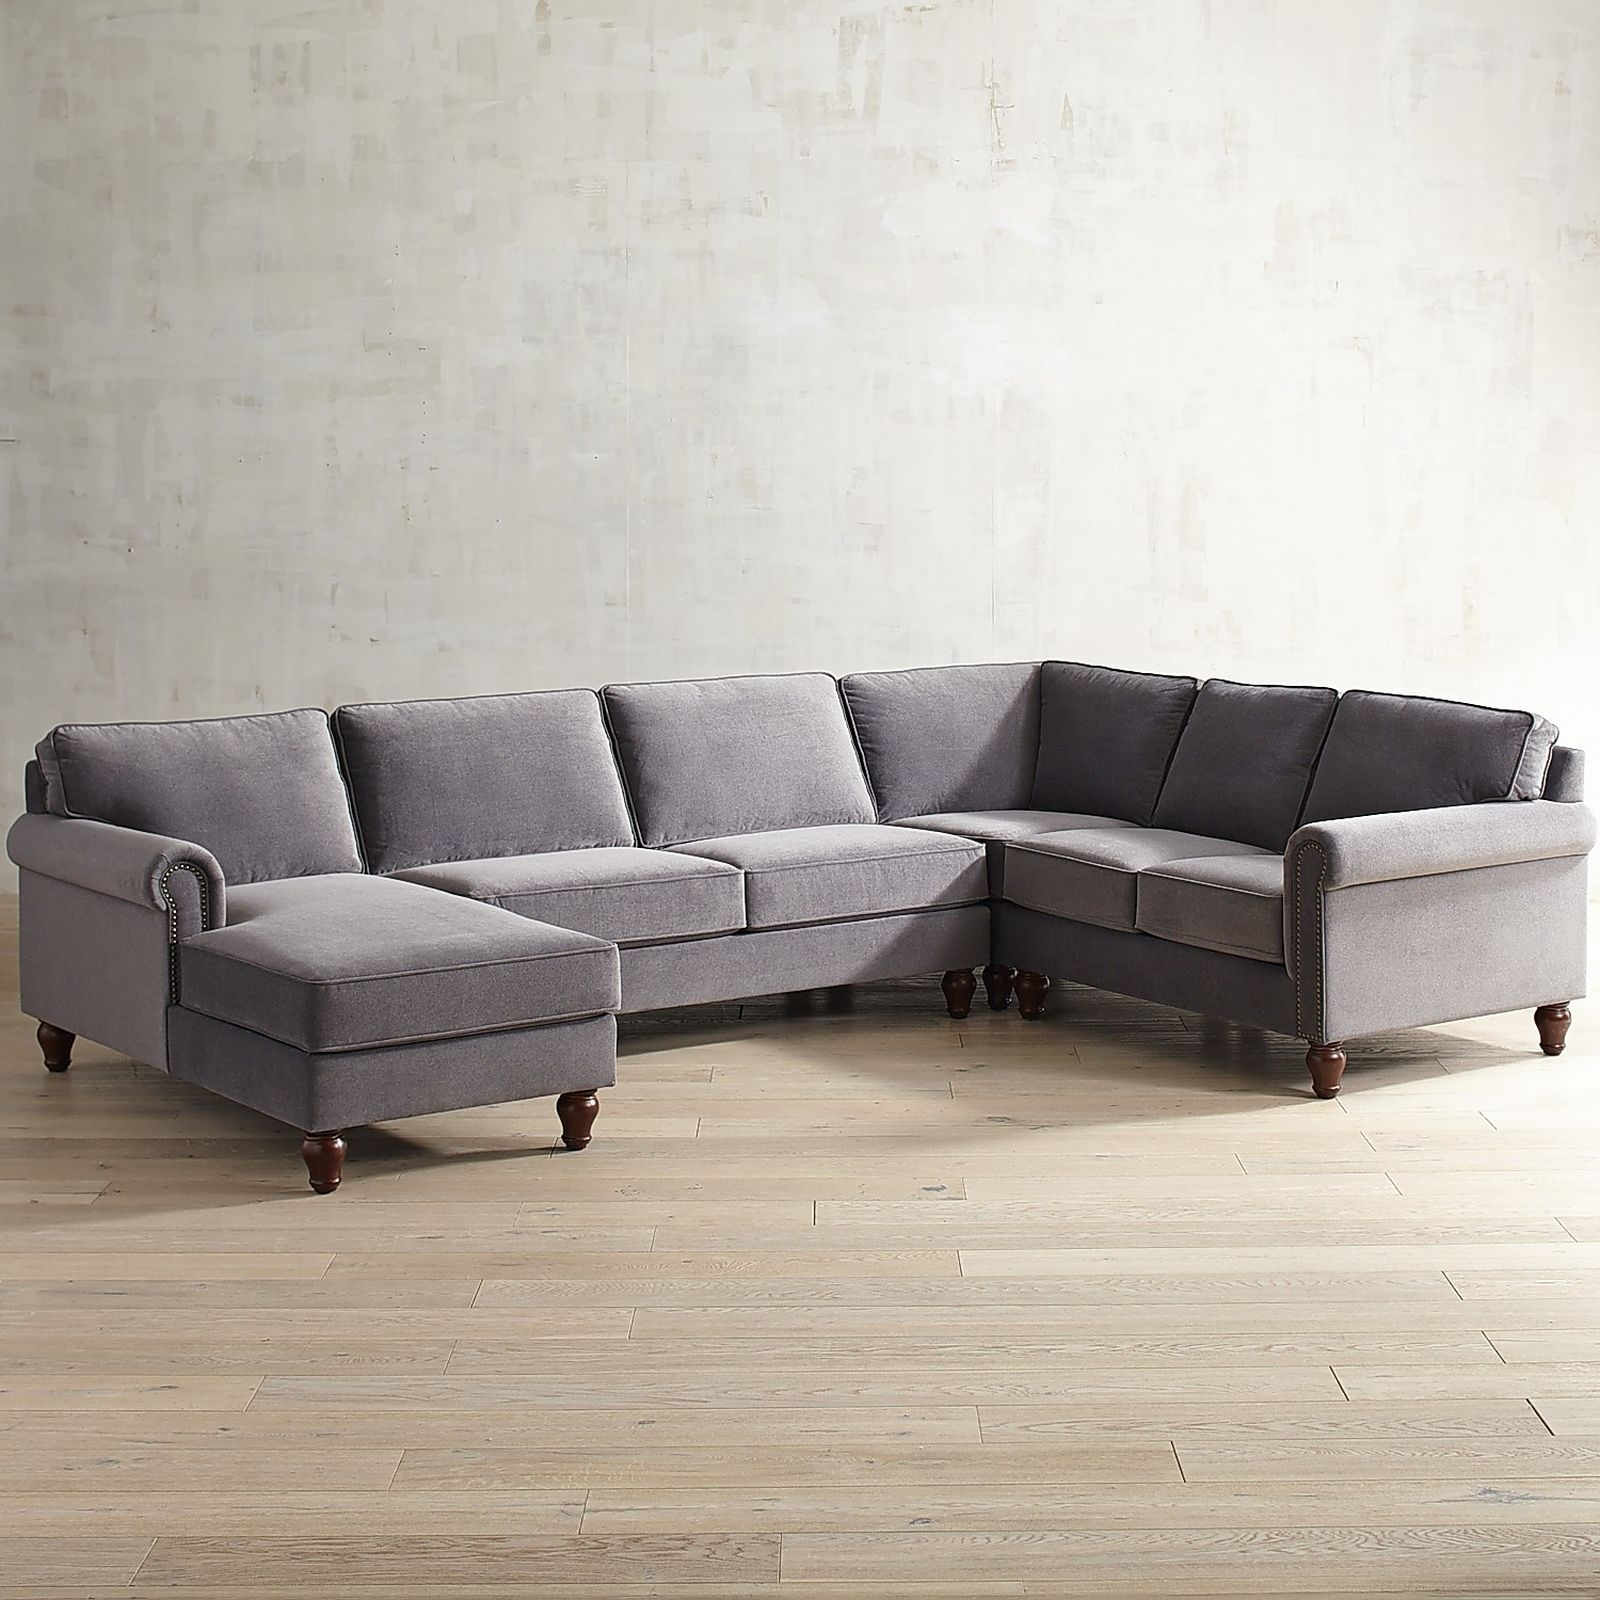 Sofas For Sale Online: 2019 Popular Canada Sale Sectional Sofas